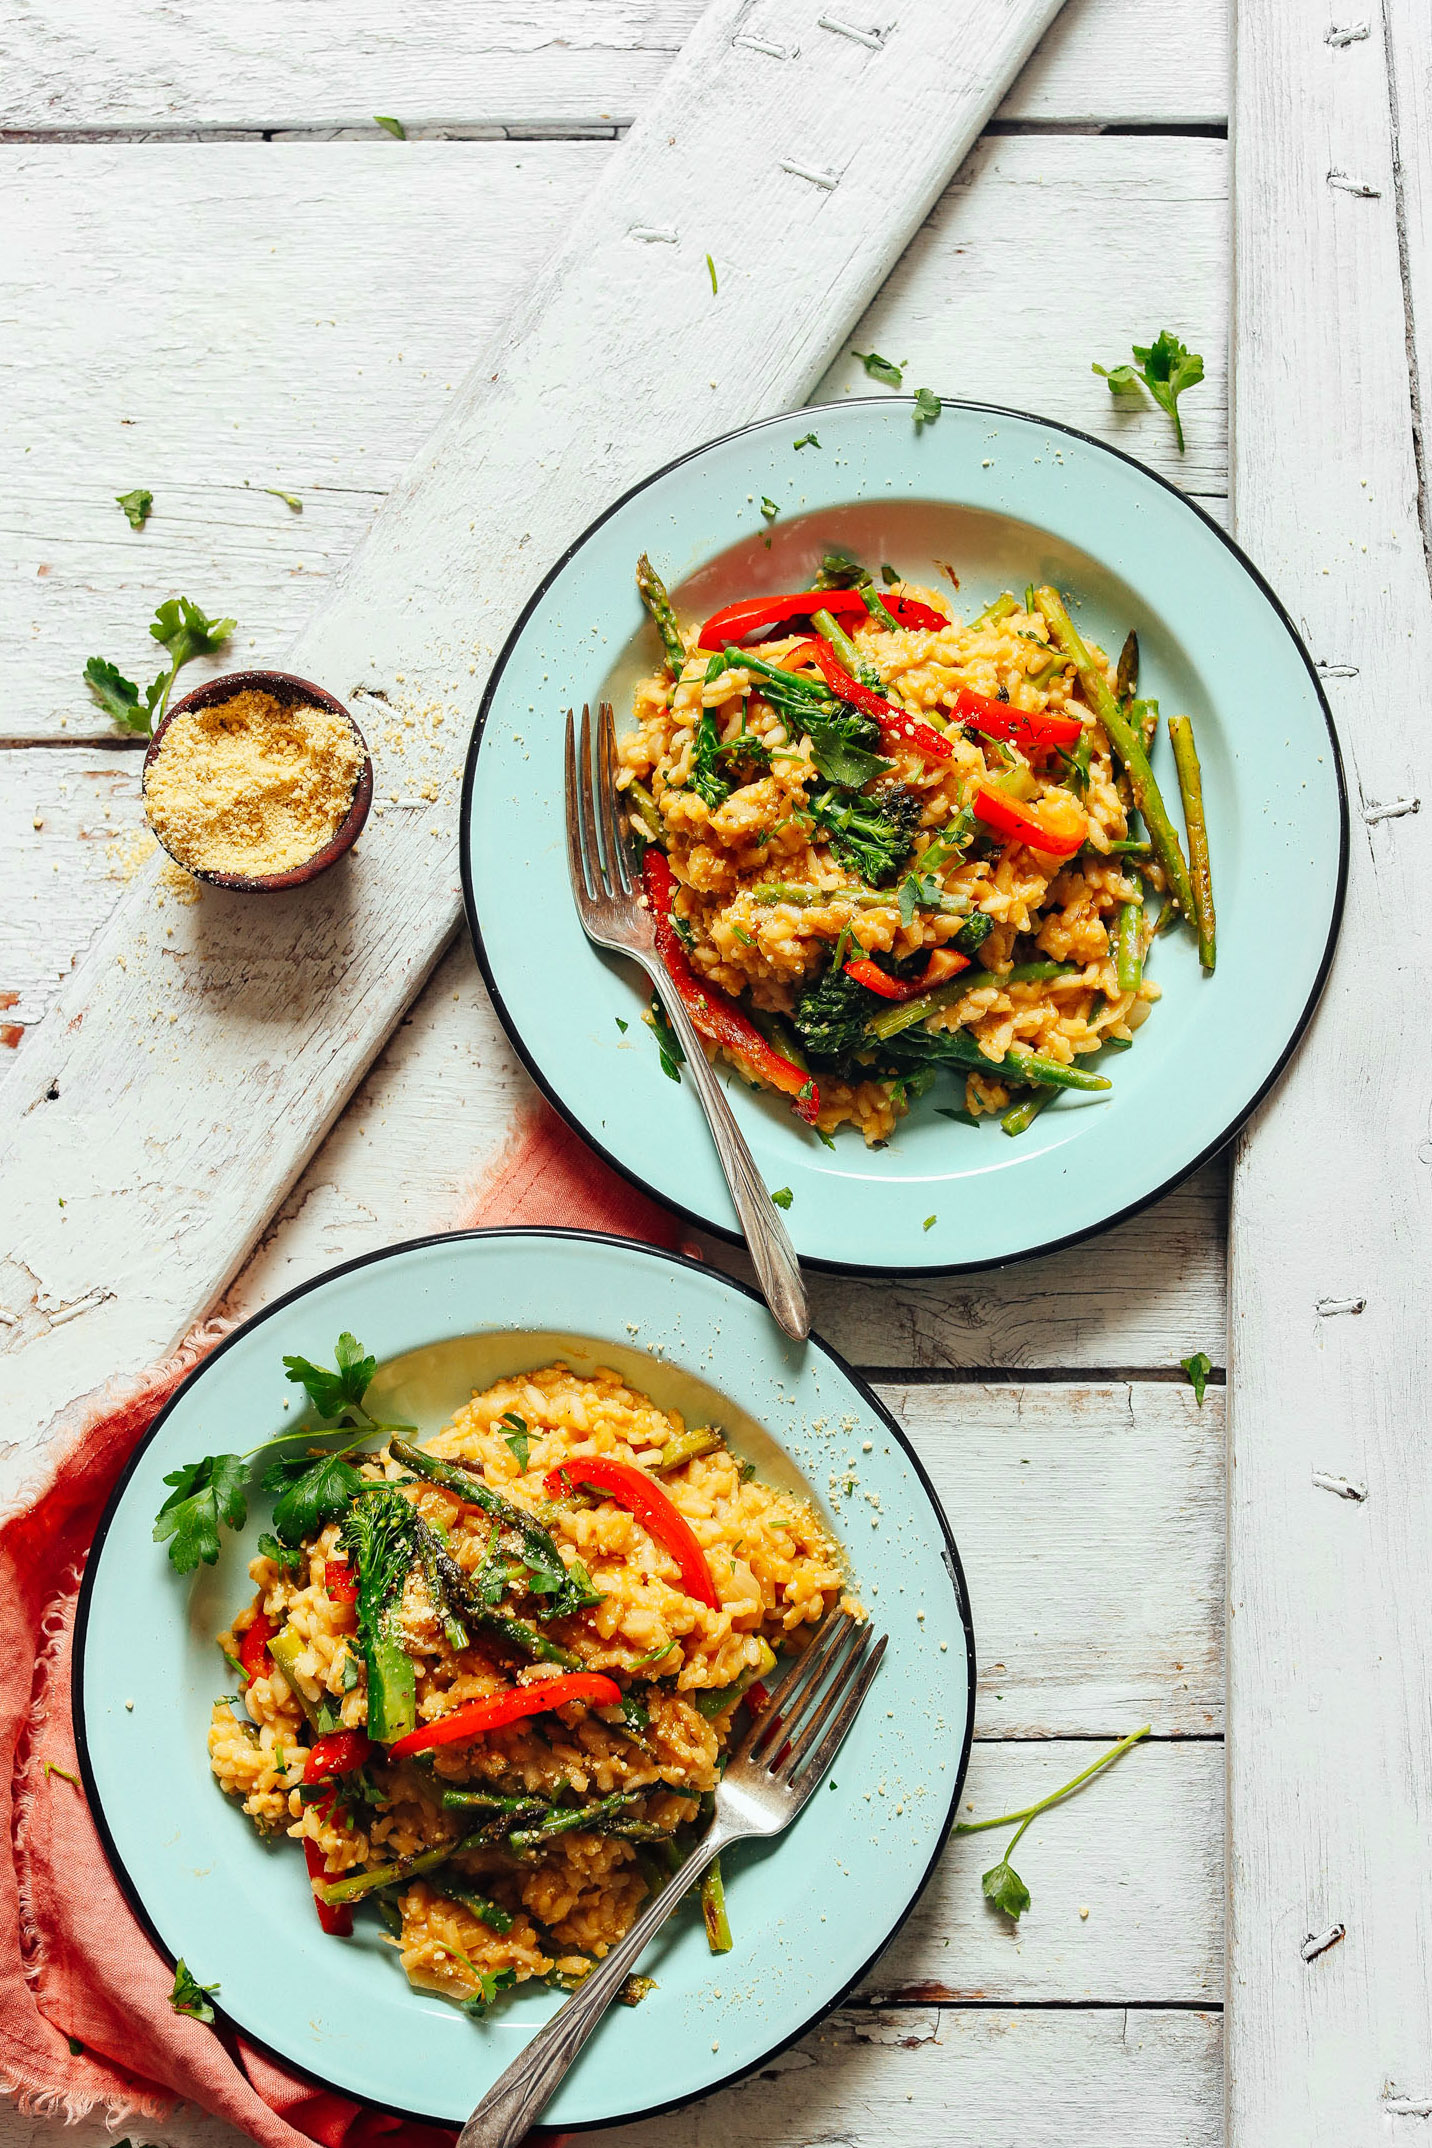 Two hearty servings of Creamy Vegetable Risotto in dinner bowls with a side of vegan parmesan